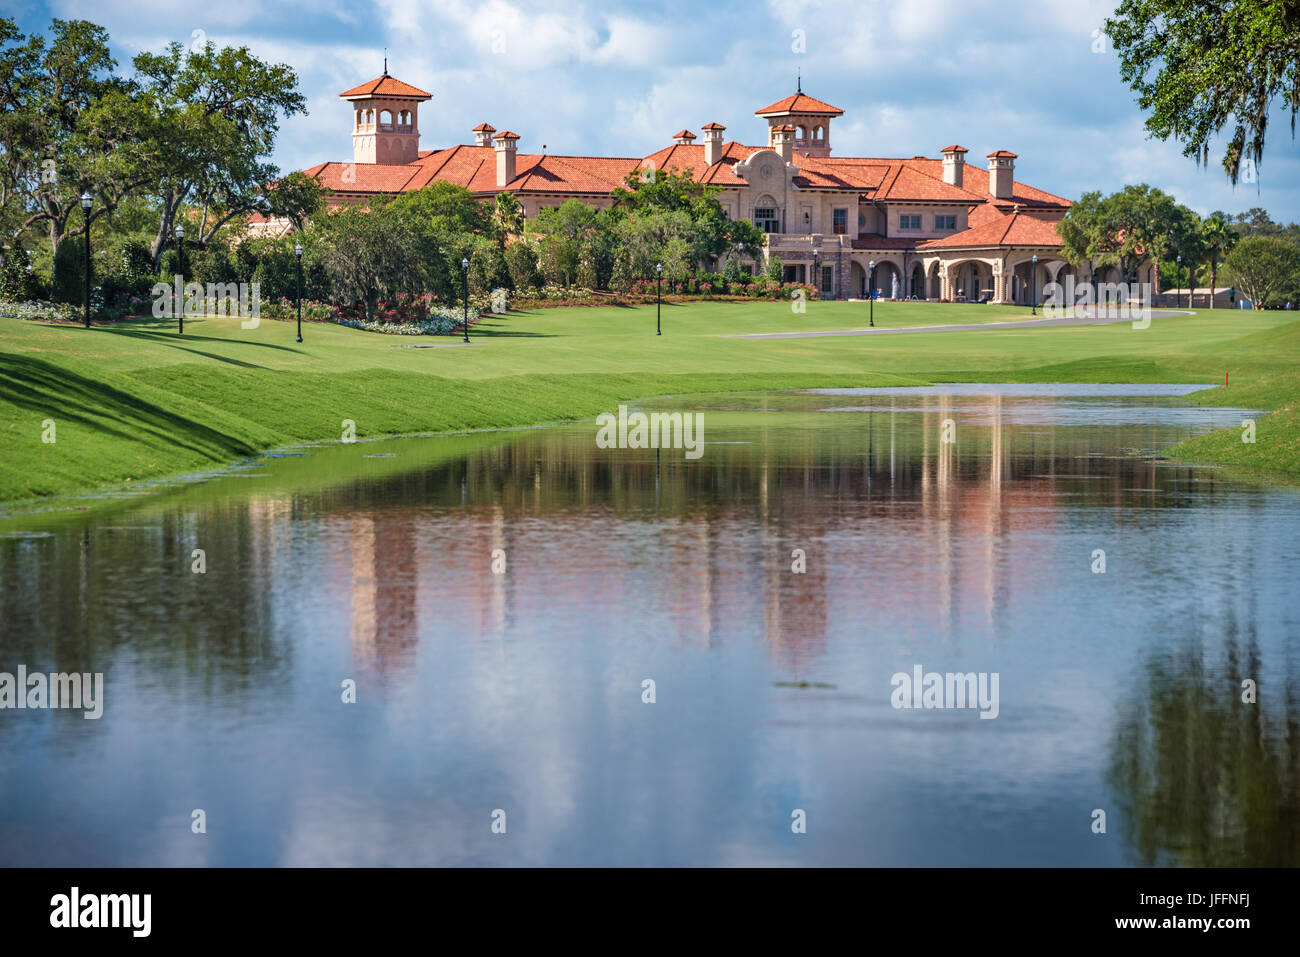 TPC Sawgrass Clubhouse in Ponte Vedra Beach, Florida. (USA) - Stock Image